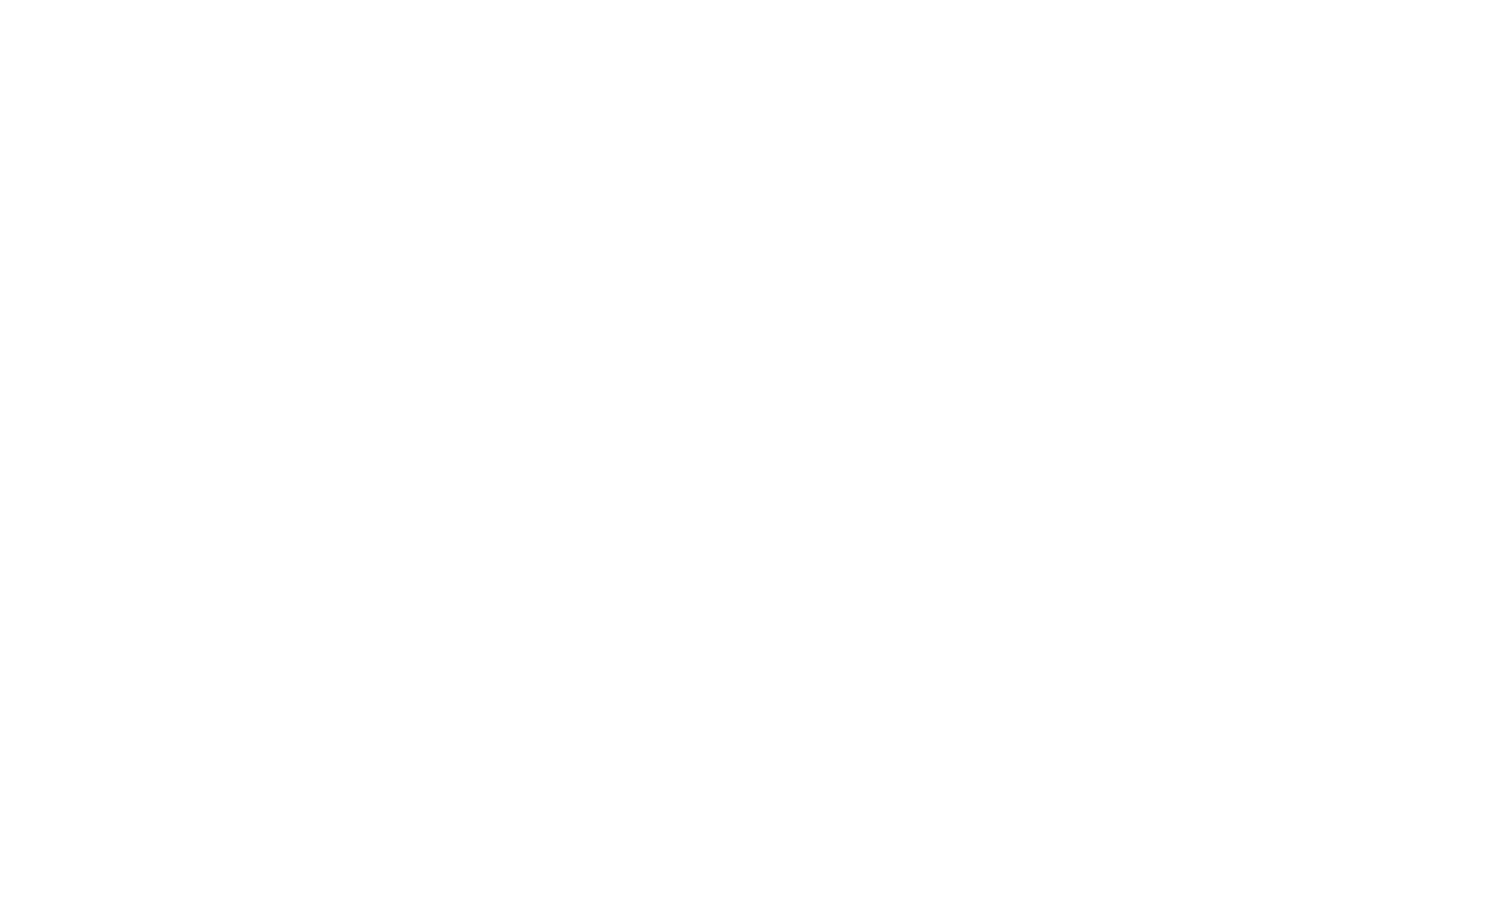 CDW | Cebu Design Week 2019